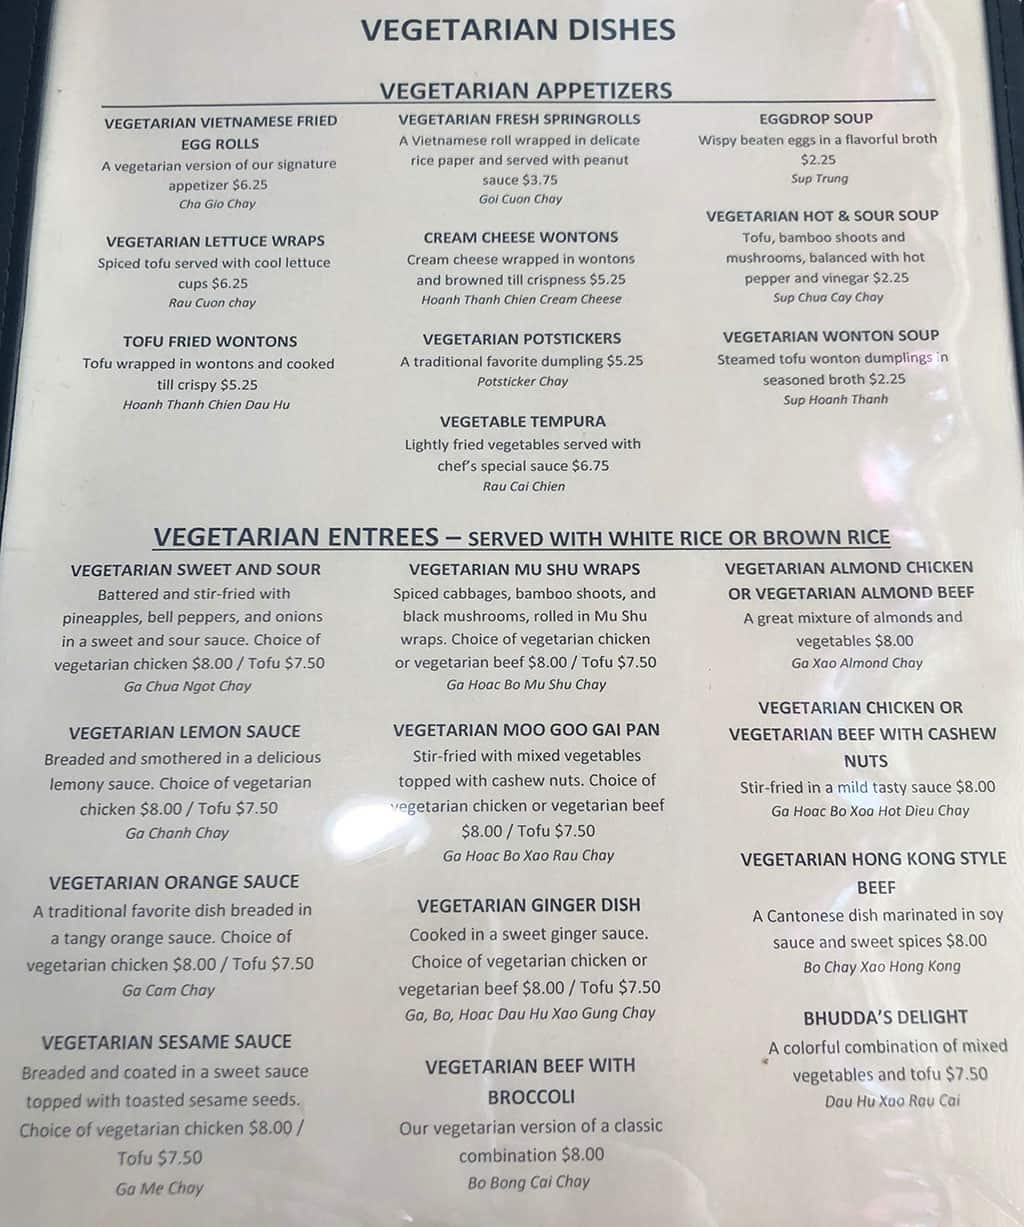 Shanghai Cafe menu - vegetarian appetizers and entrees